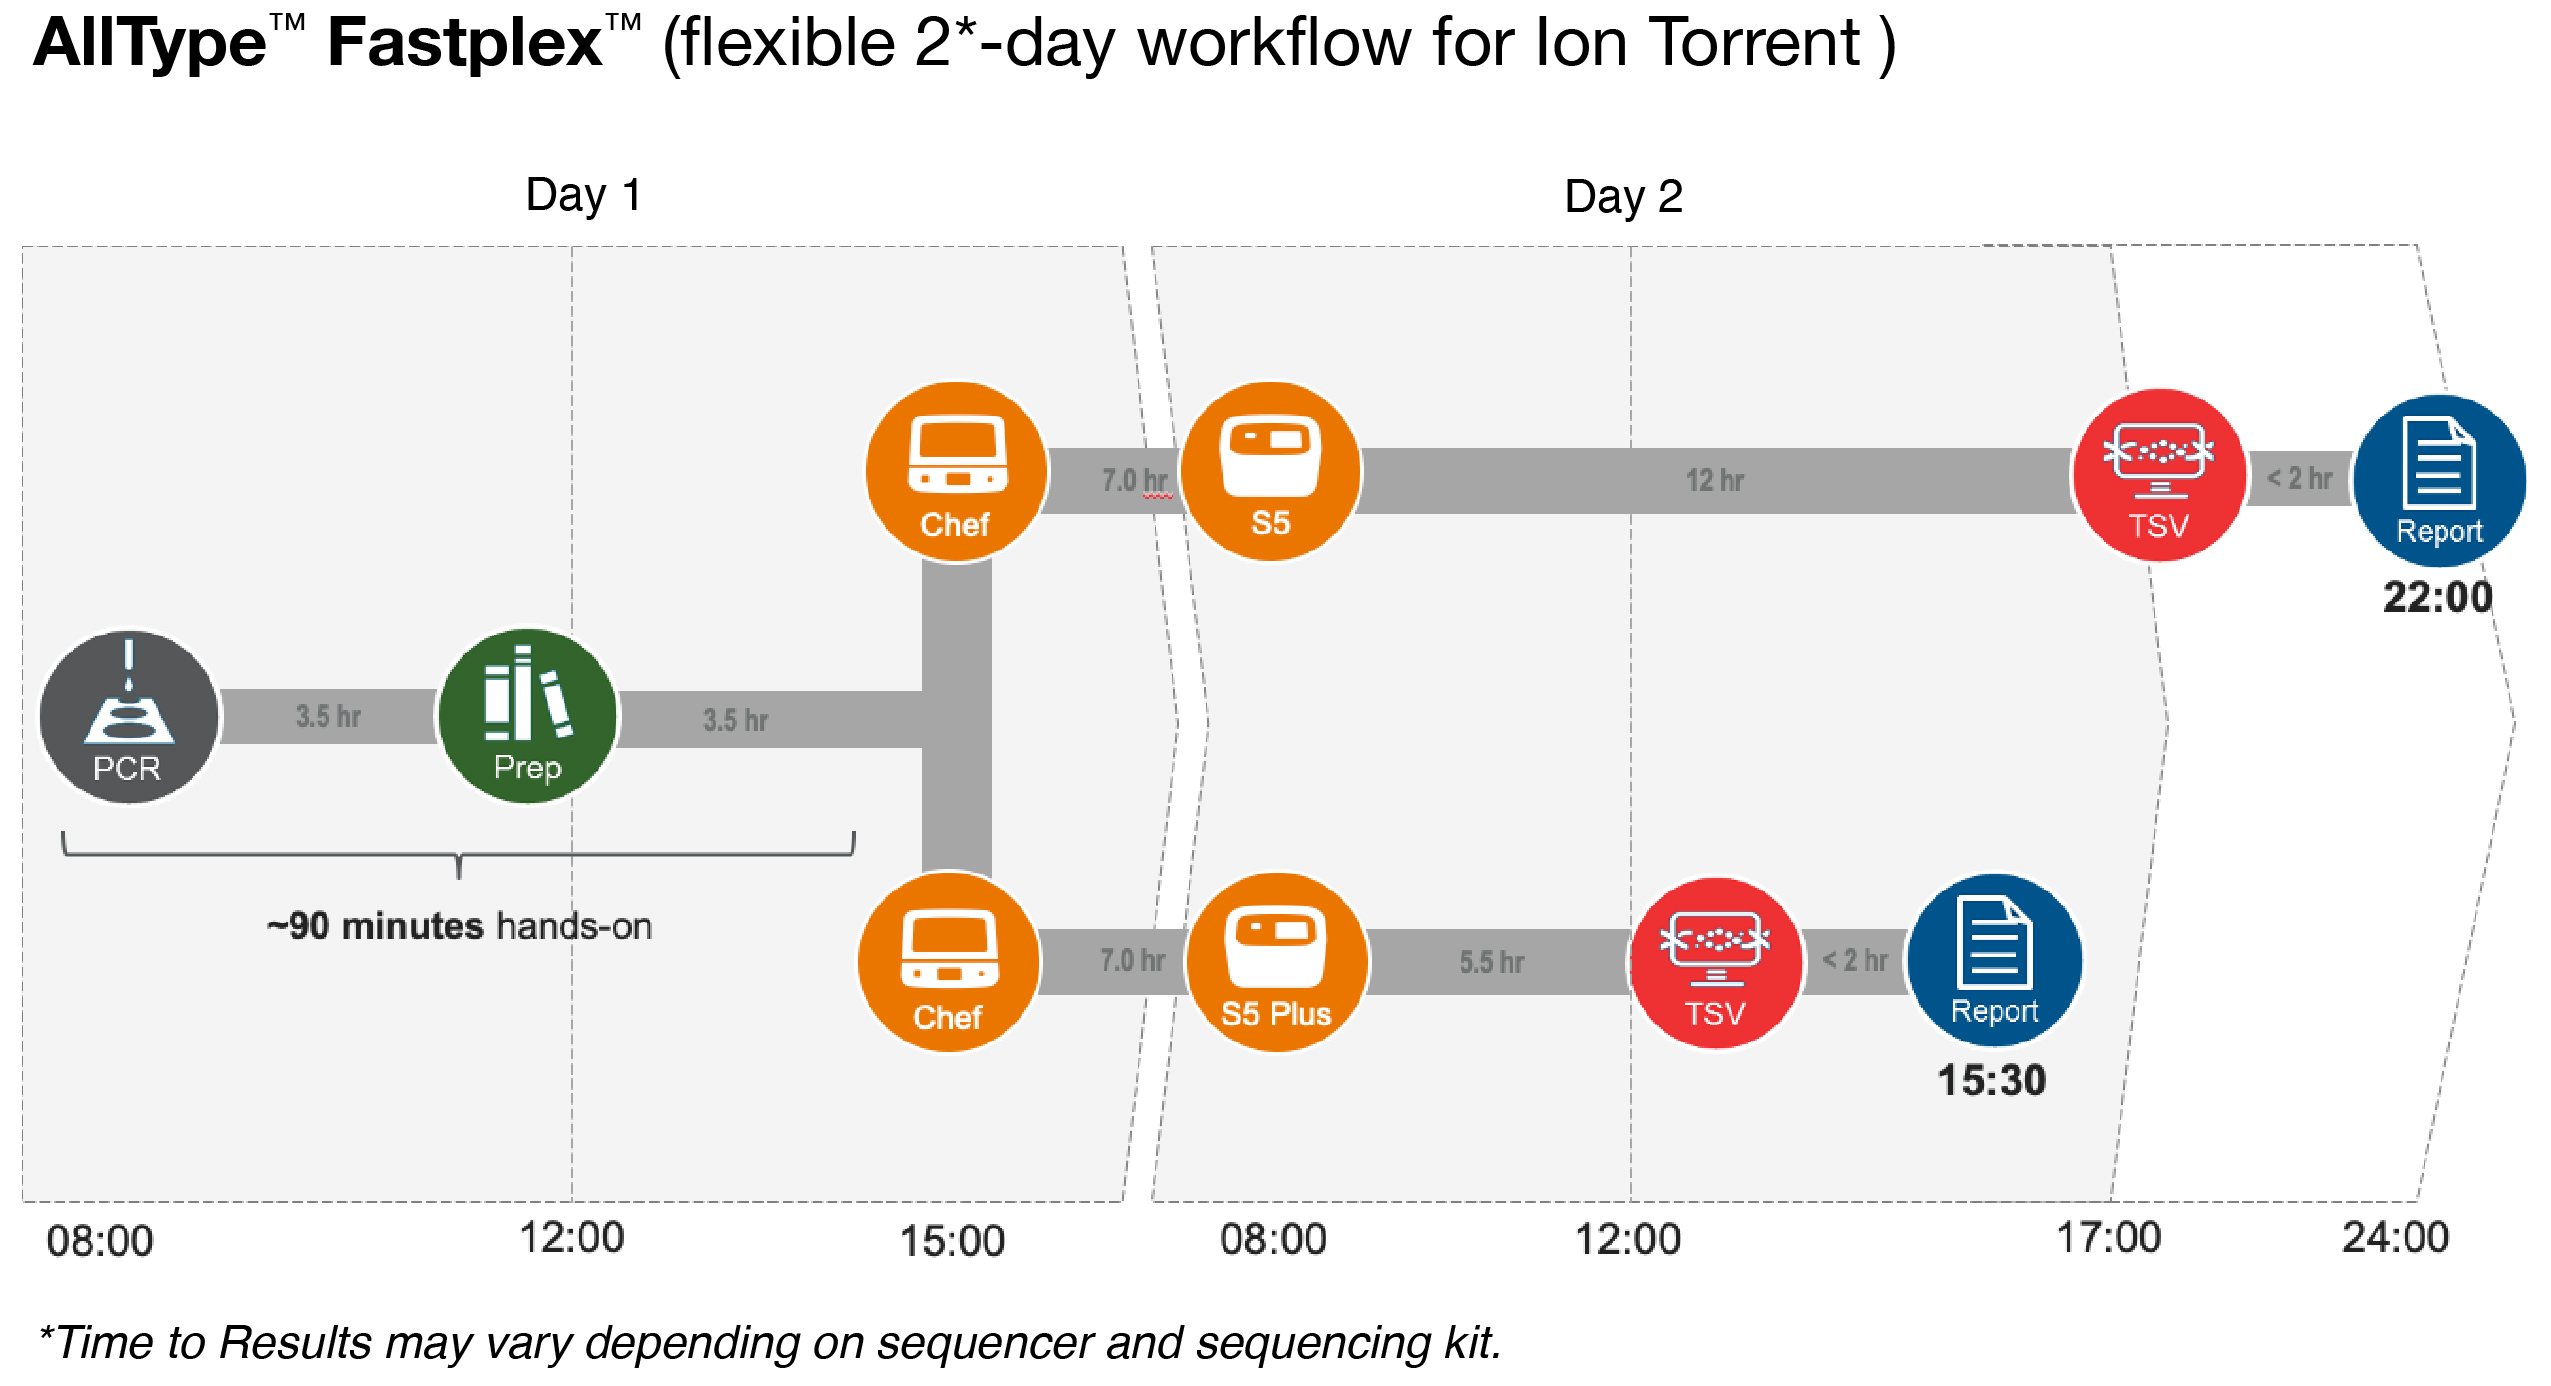 AllType FASTplex flexible 2-day workflow for Ion Torrent